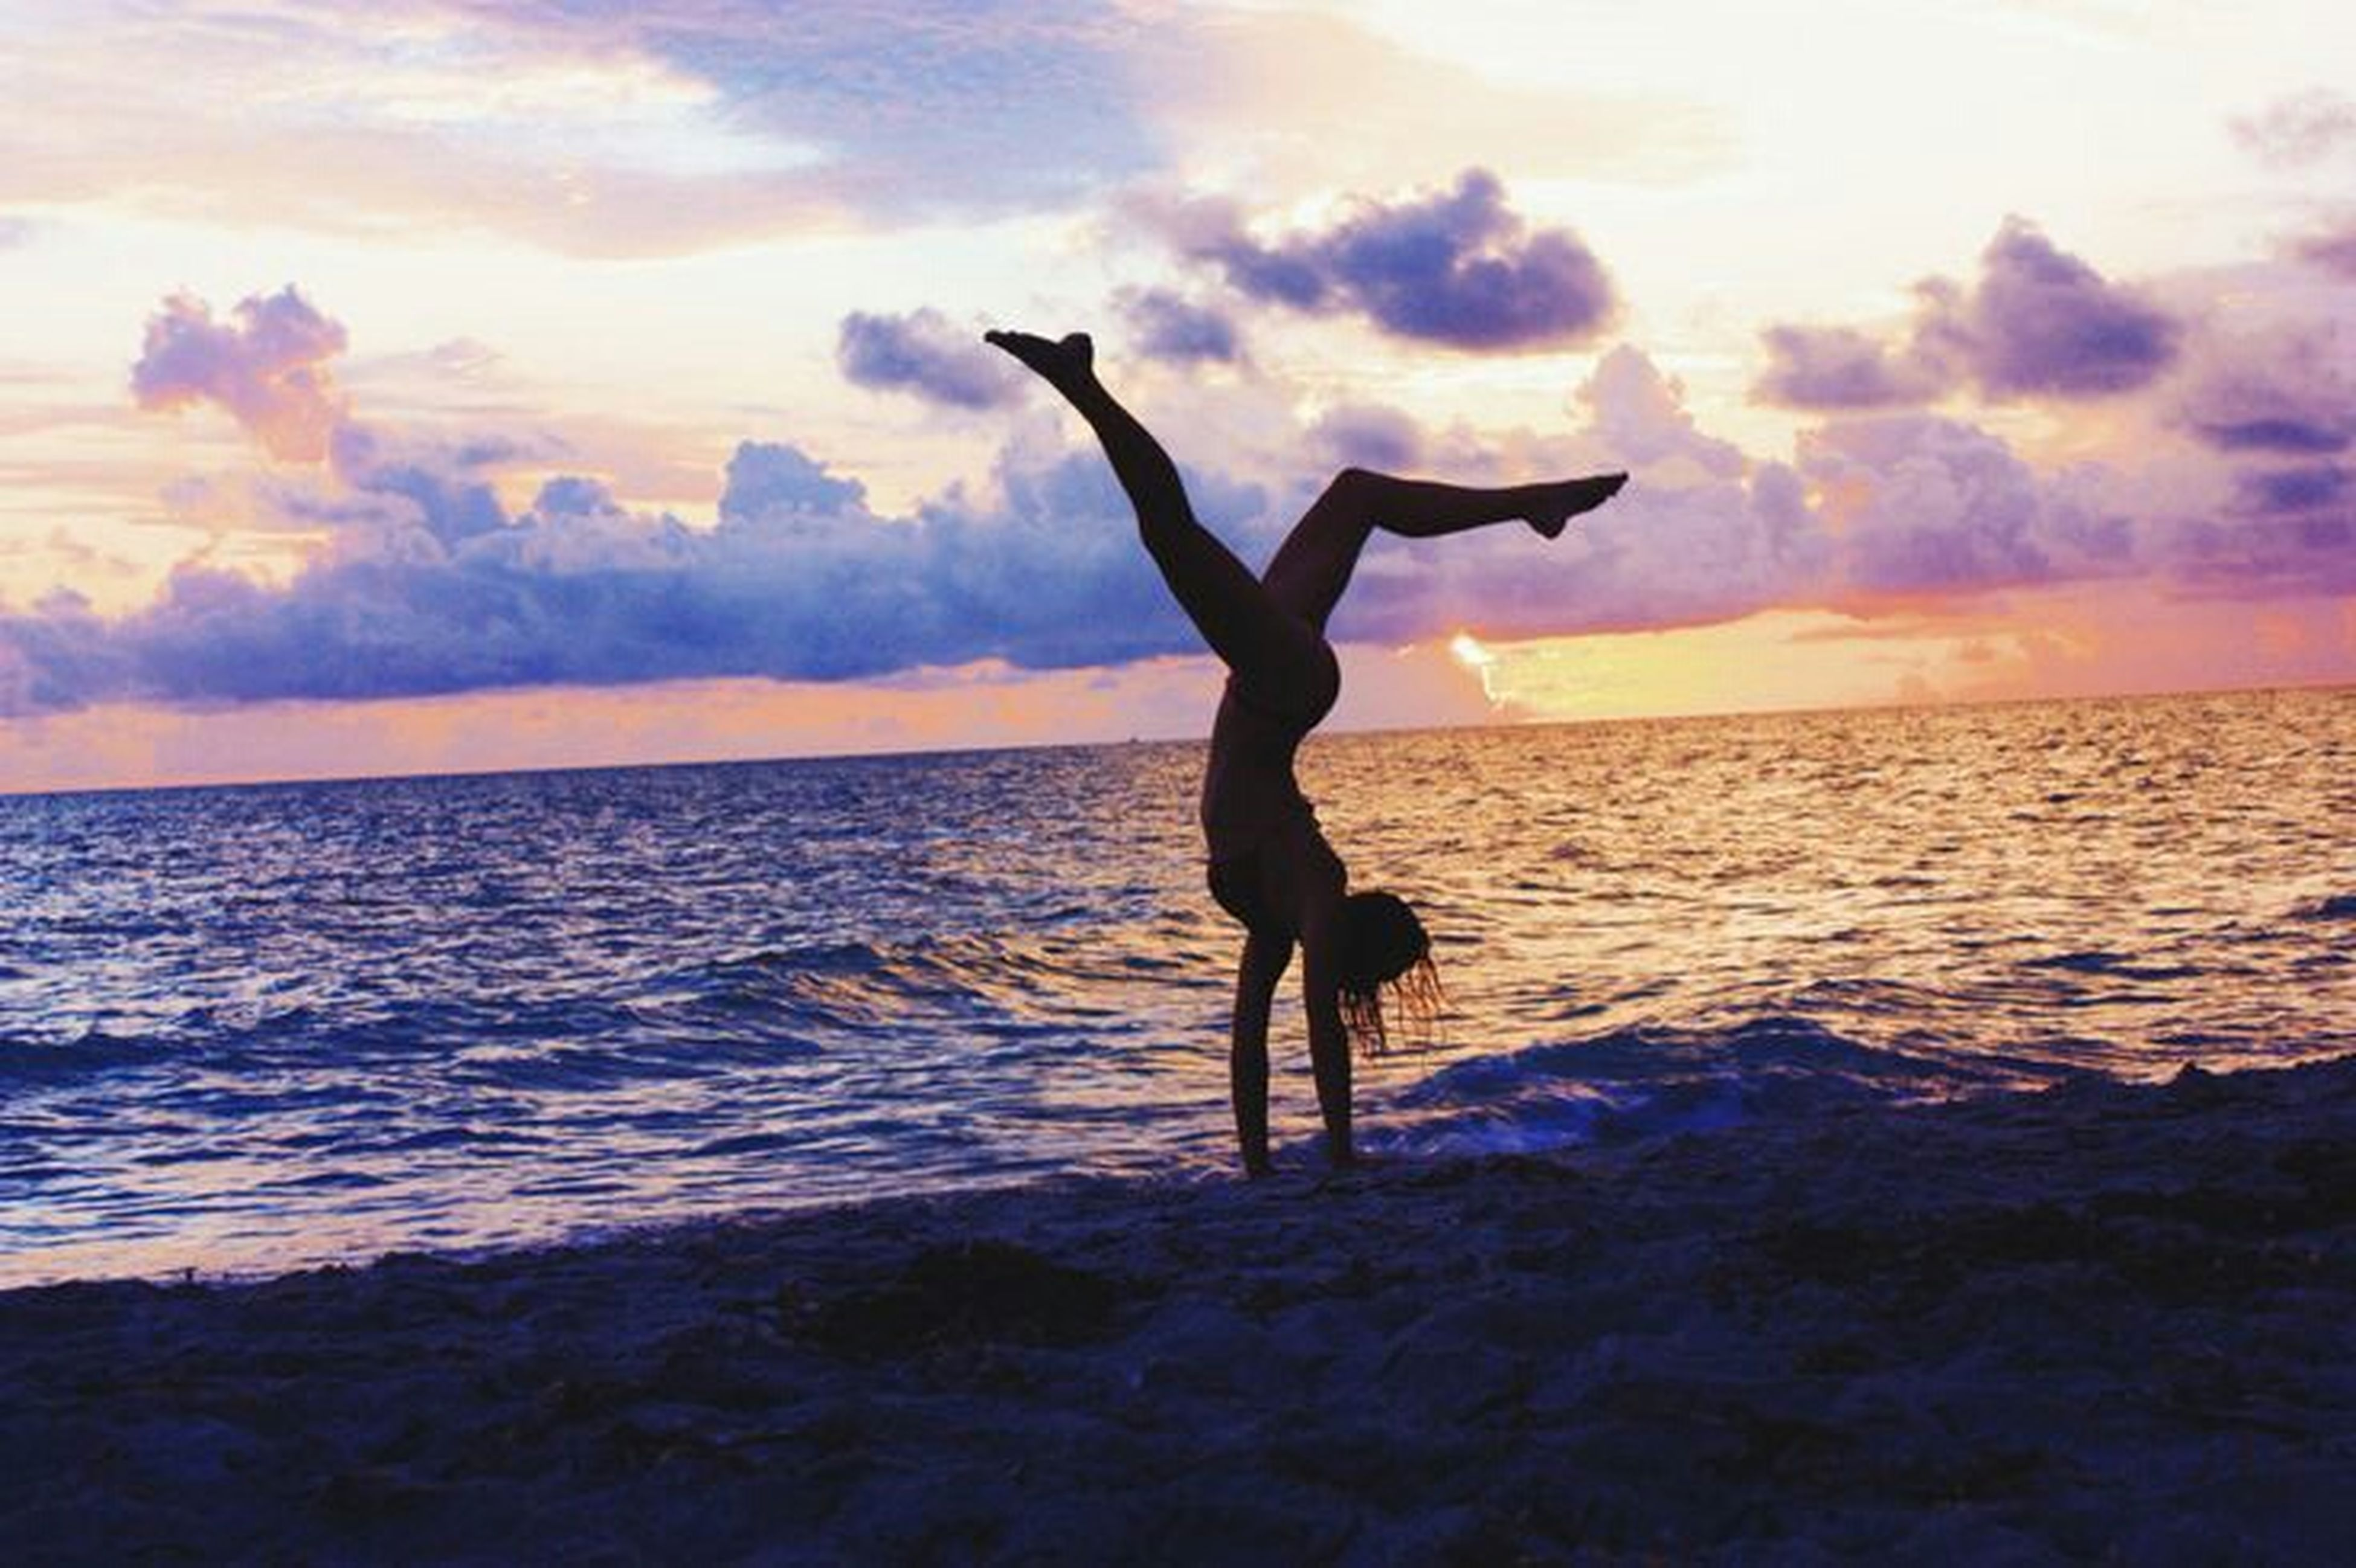 sea, water, sky, horizon over water, sunset, full length, lifestyles, leisure activity, silhouette, scenics, cloud - sky, beach, tranquil scene, beauty in nature, arms outstretched, shore, jumping, standing